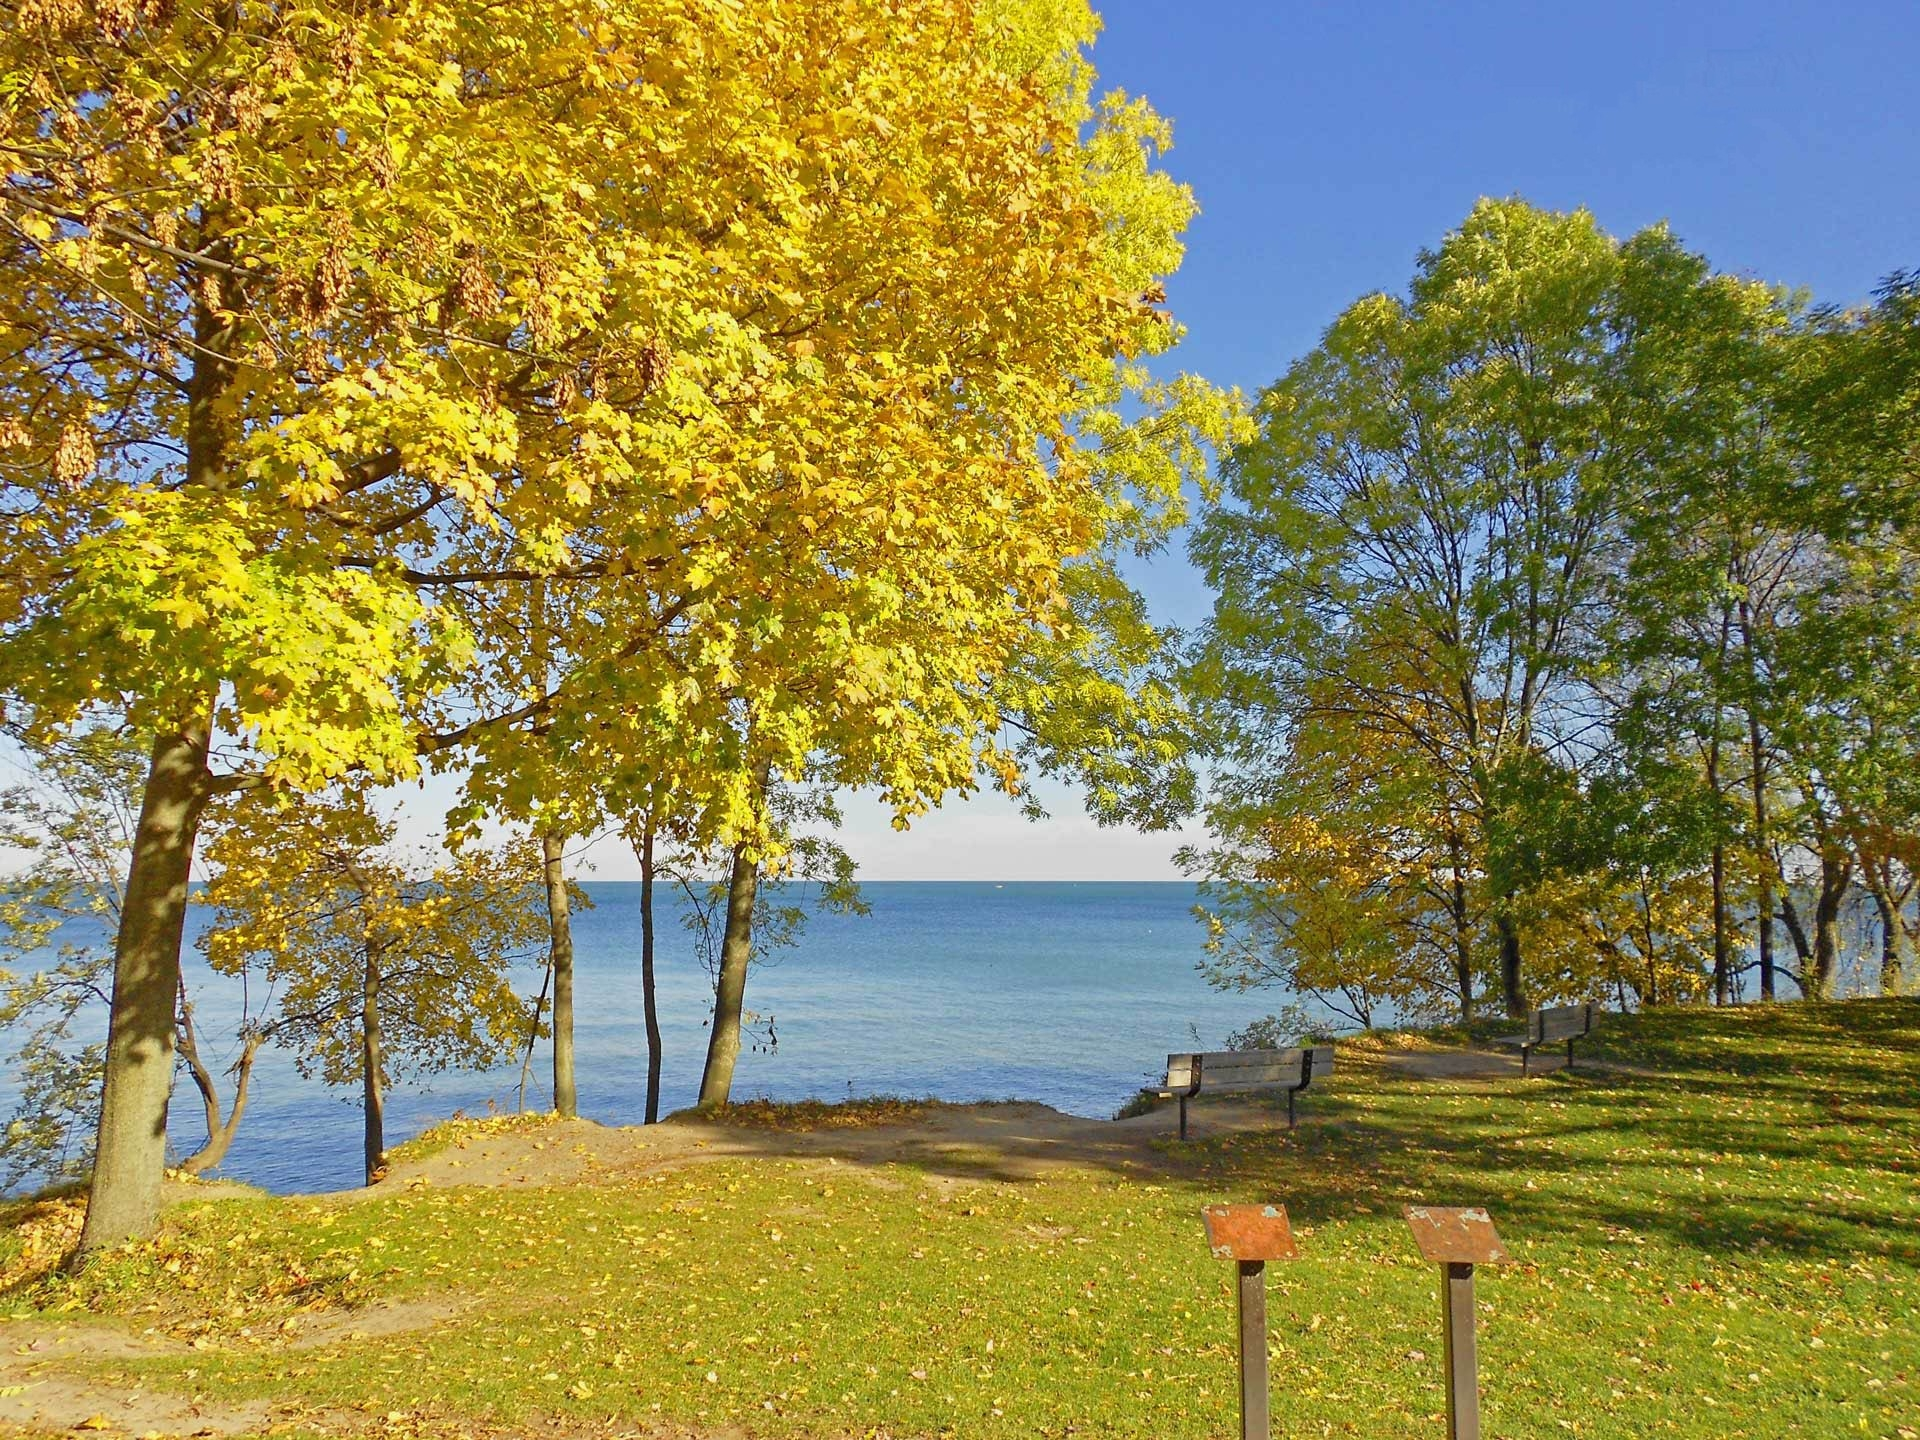 131659 download wallpaper Nature, Autumn, Canadian Coast, Polyana, Glade, Benches, Landscape screensavers and pictures for free